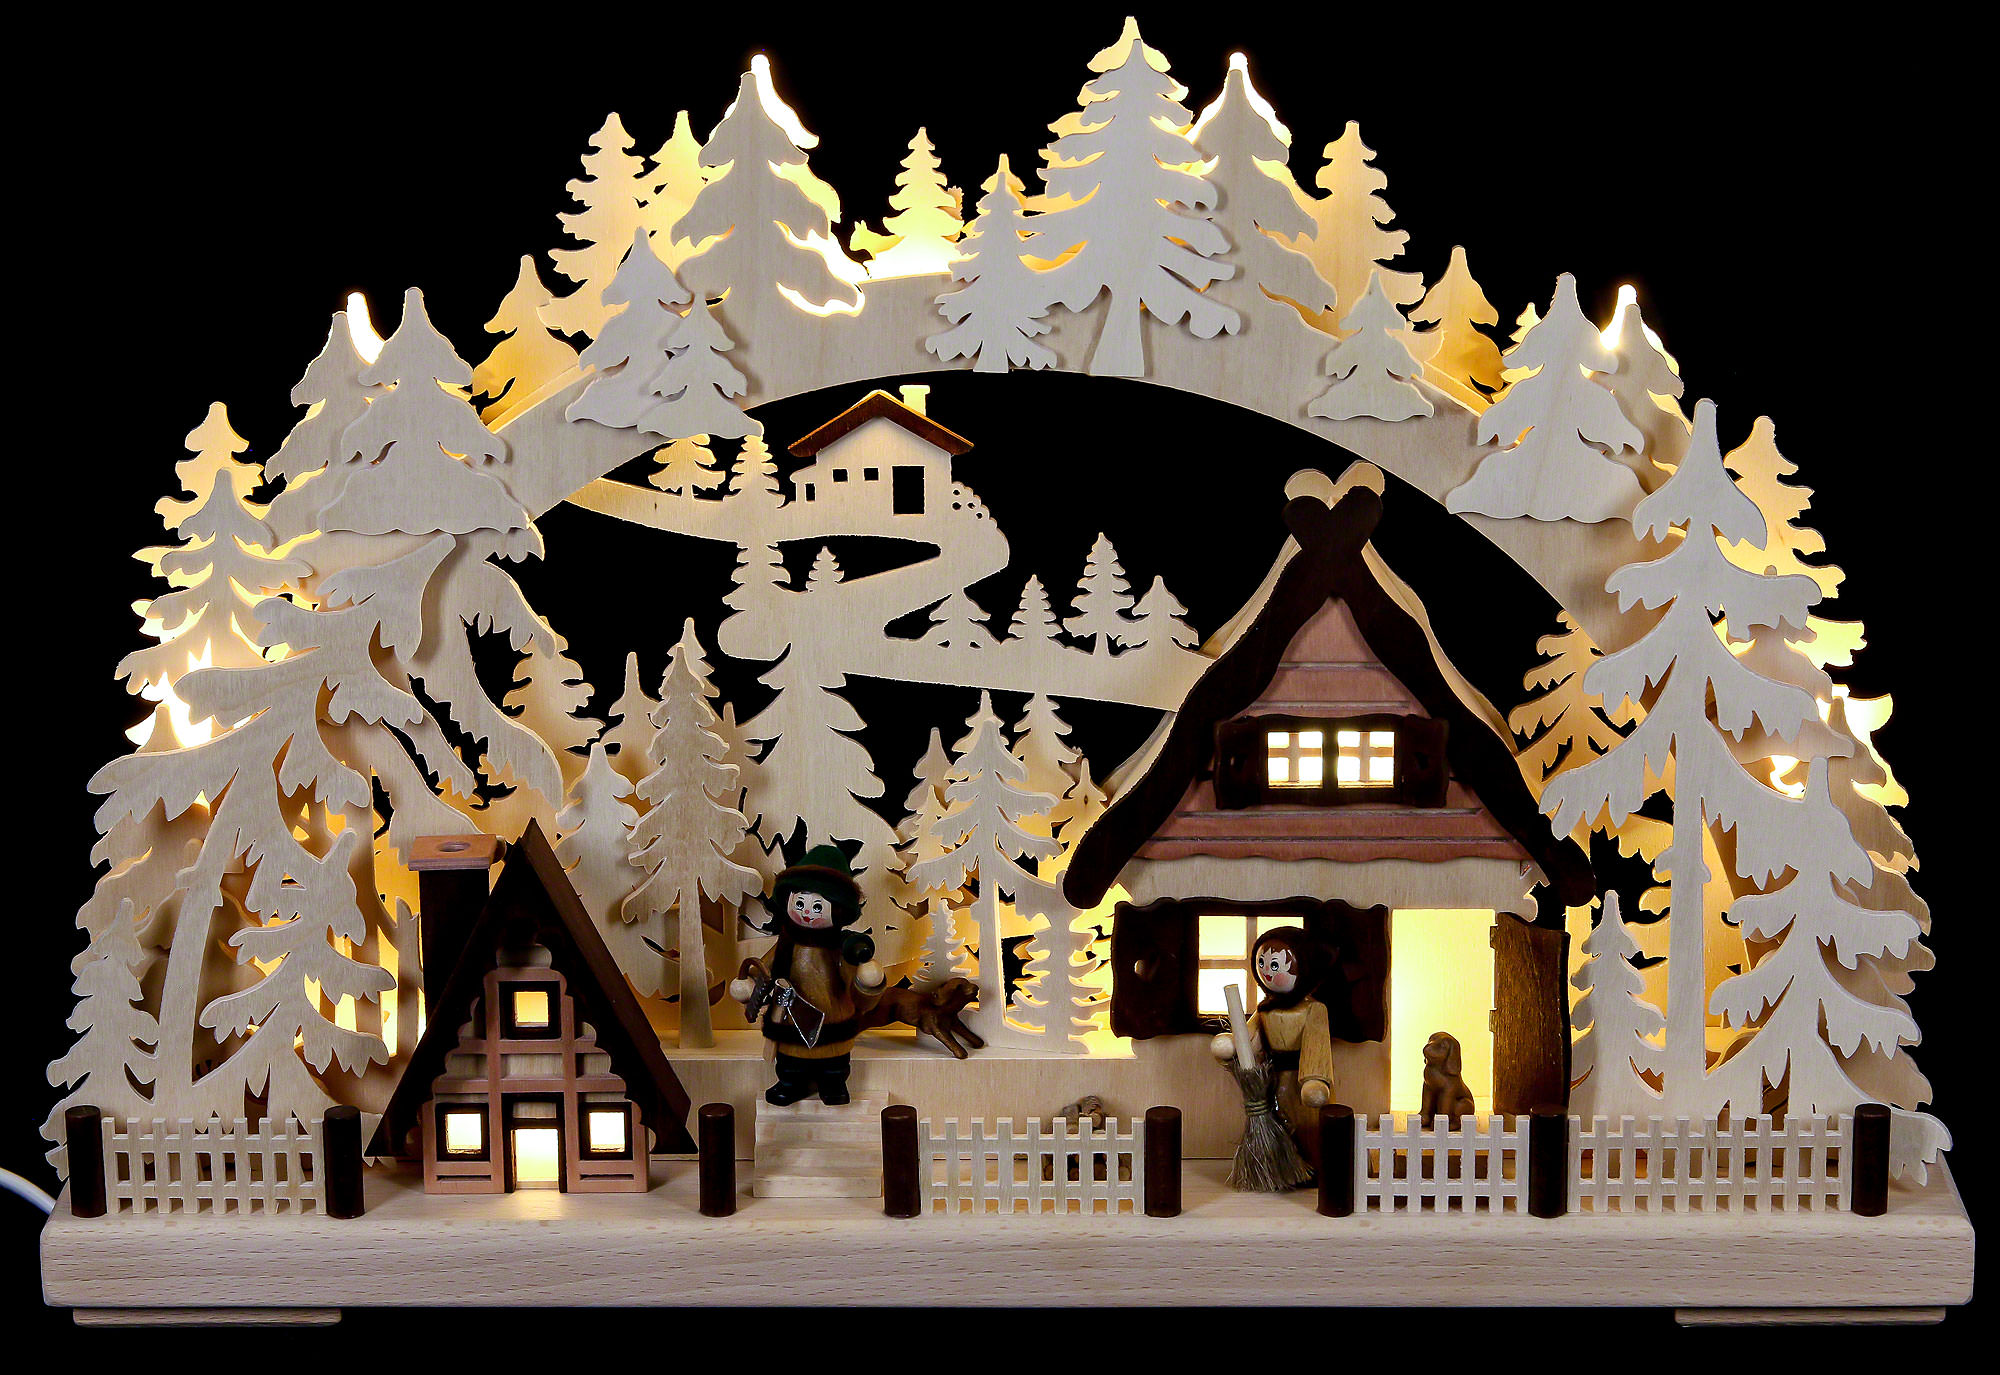 3d candle arch christmas preparations 43x30cm 17x12in ch for Arch candle christmas decoration